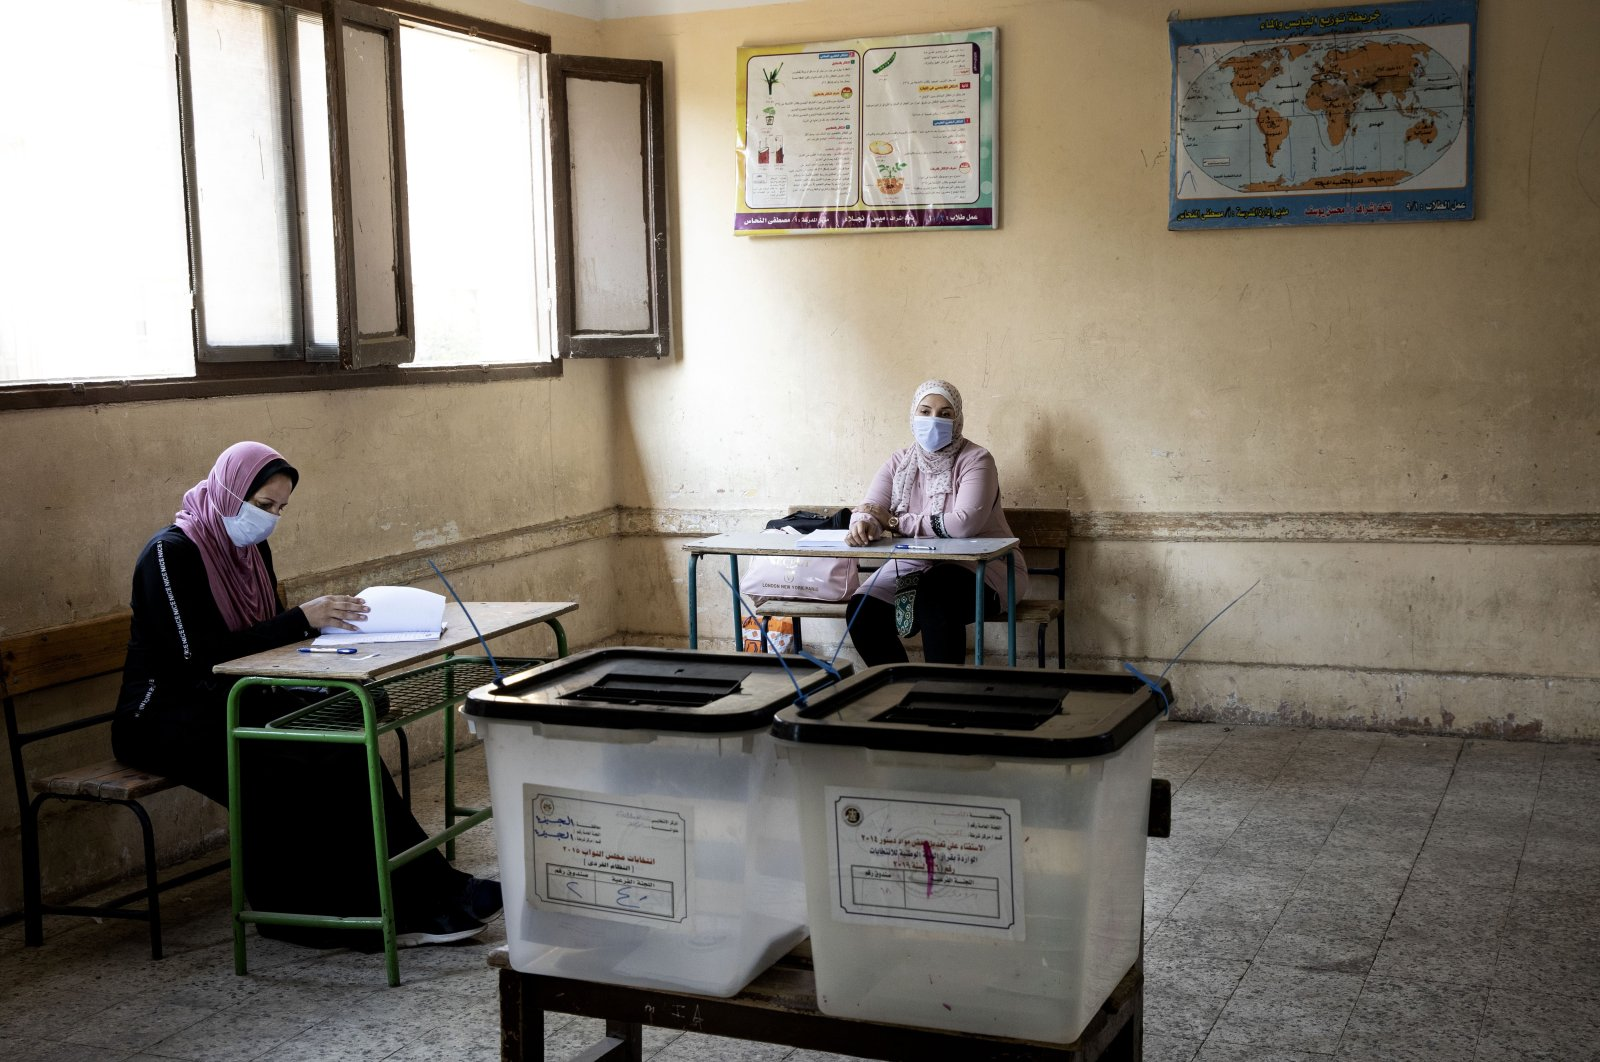 Election officials wait for people to vote on the first day of the Senate elections inside a polling station in Cairo, Egypt, Aug. 10, 2020. (AP Photo)